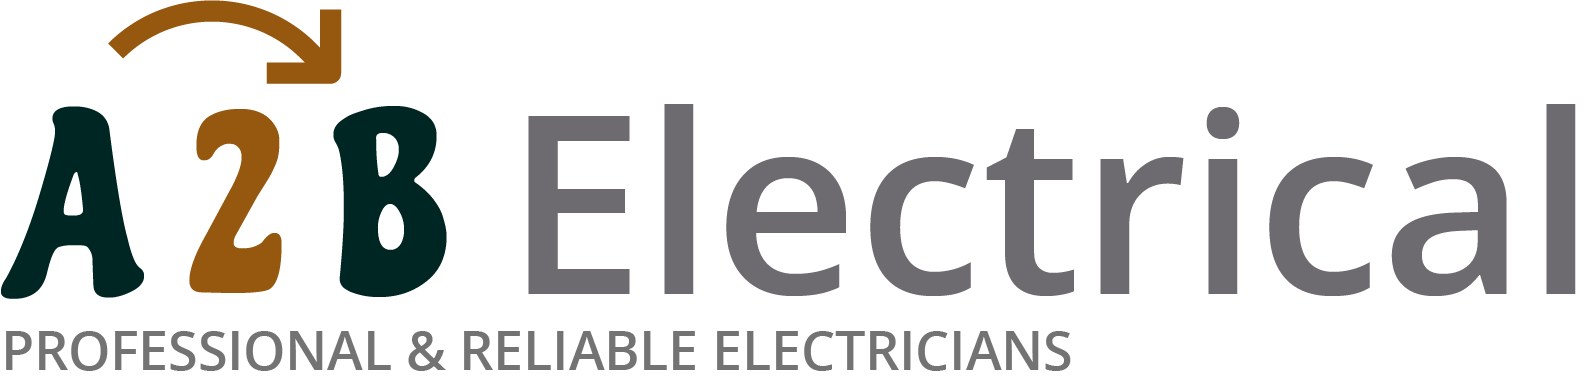 If you have electrical wiring problems in West Thurrock, we can provide an electrician to have a look for you.